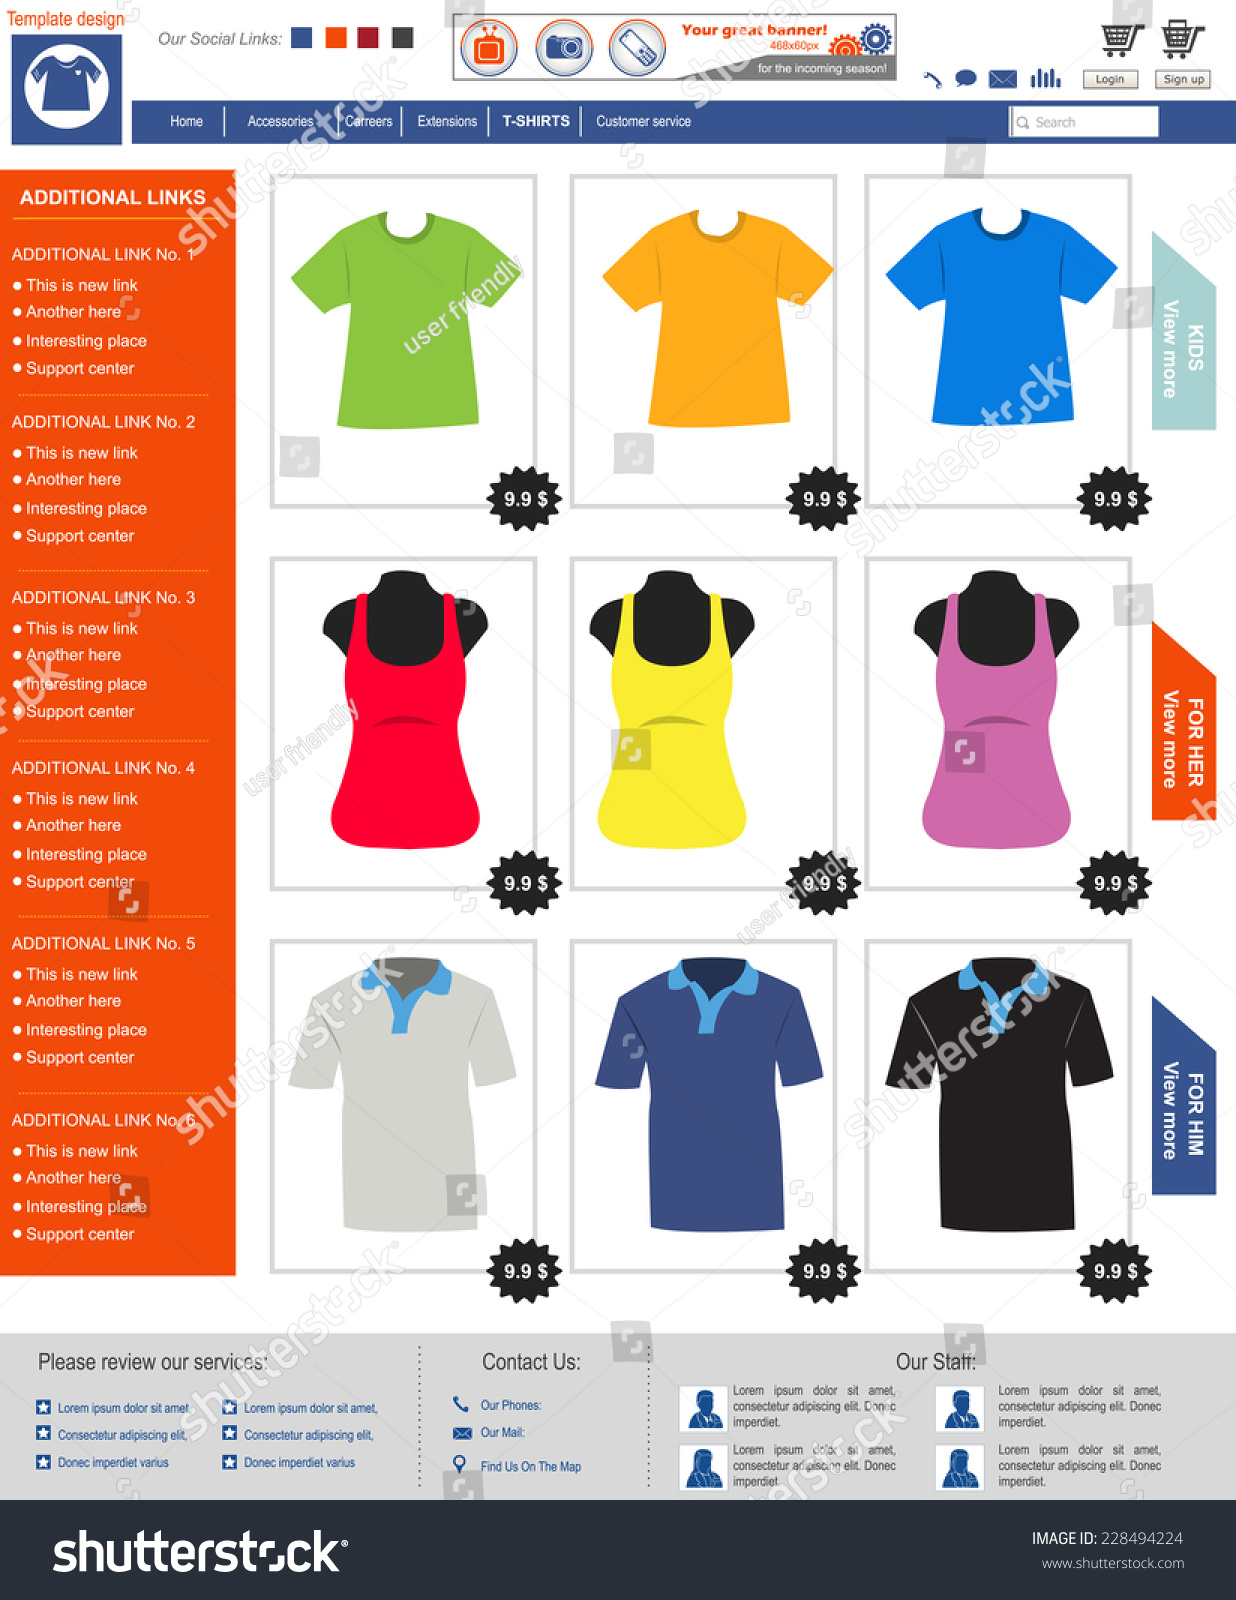 Design t shirt online template - Website Template Design Along With Icons And Images T Shirt Online Shop